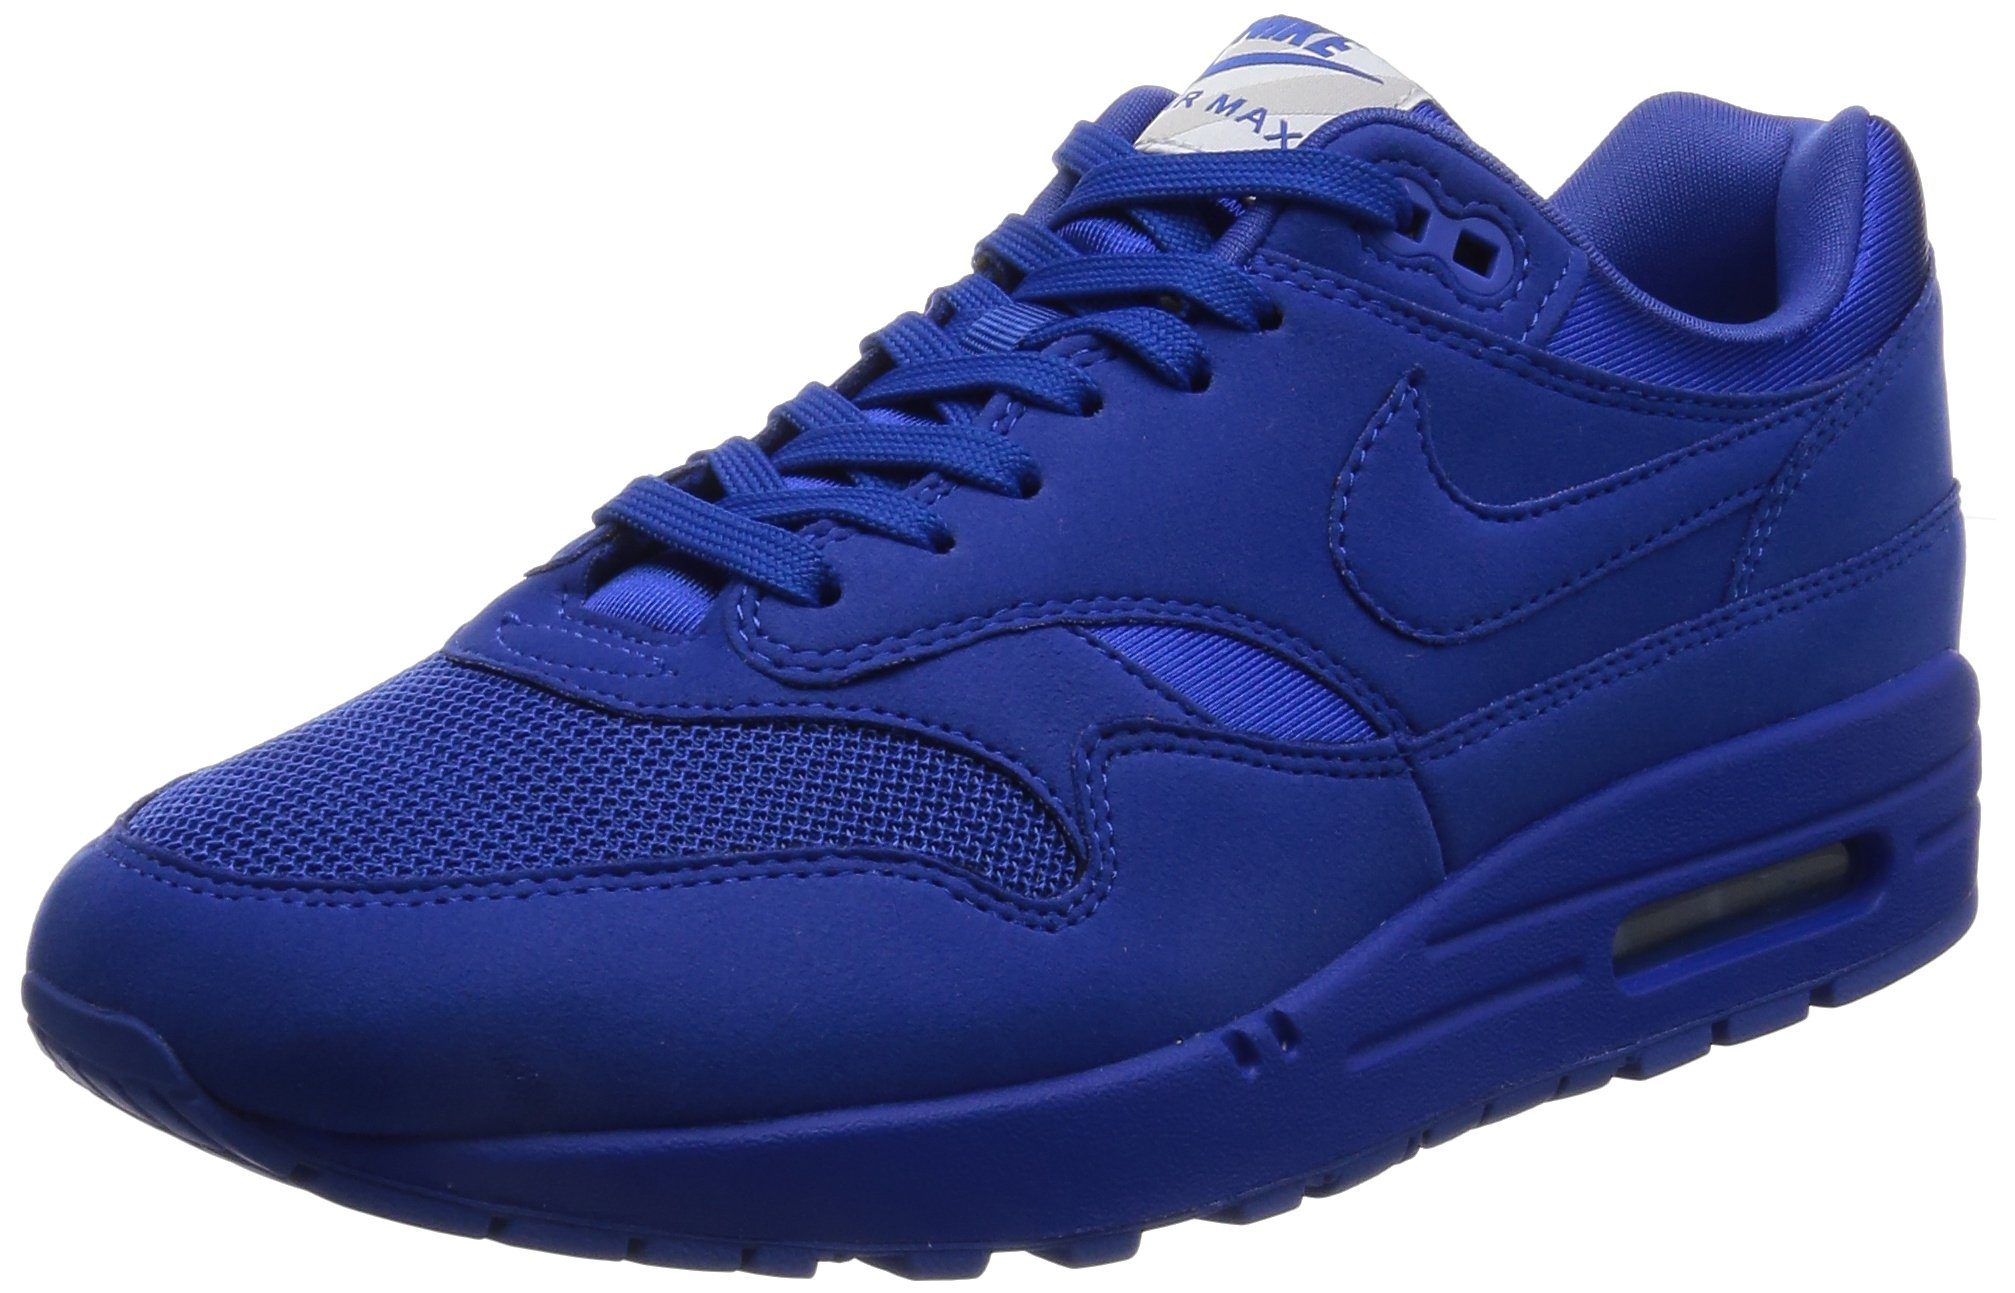 best service 26f83 4ecfe Galleon - NIKE Air Max 1 Premium  Game Royal  - 875844-400 - Size 9.5